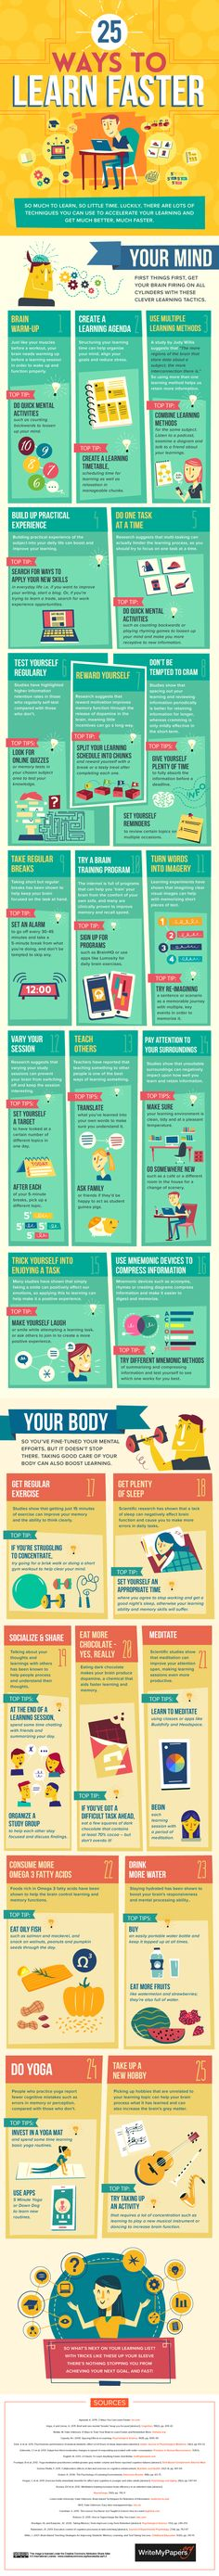 25 Ways To Learn Faster #Infographic #Brain #Learning